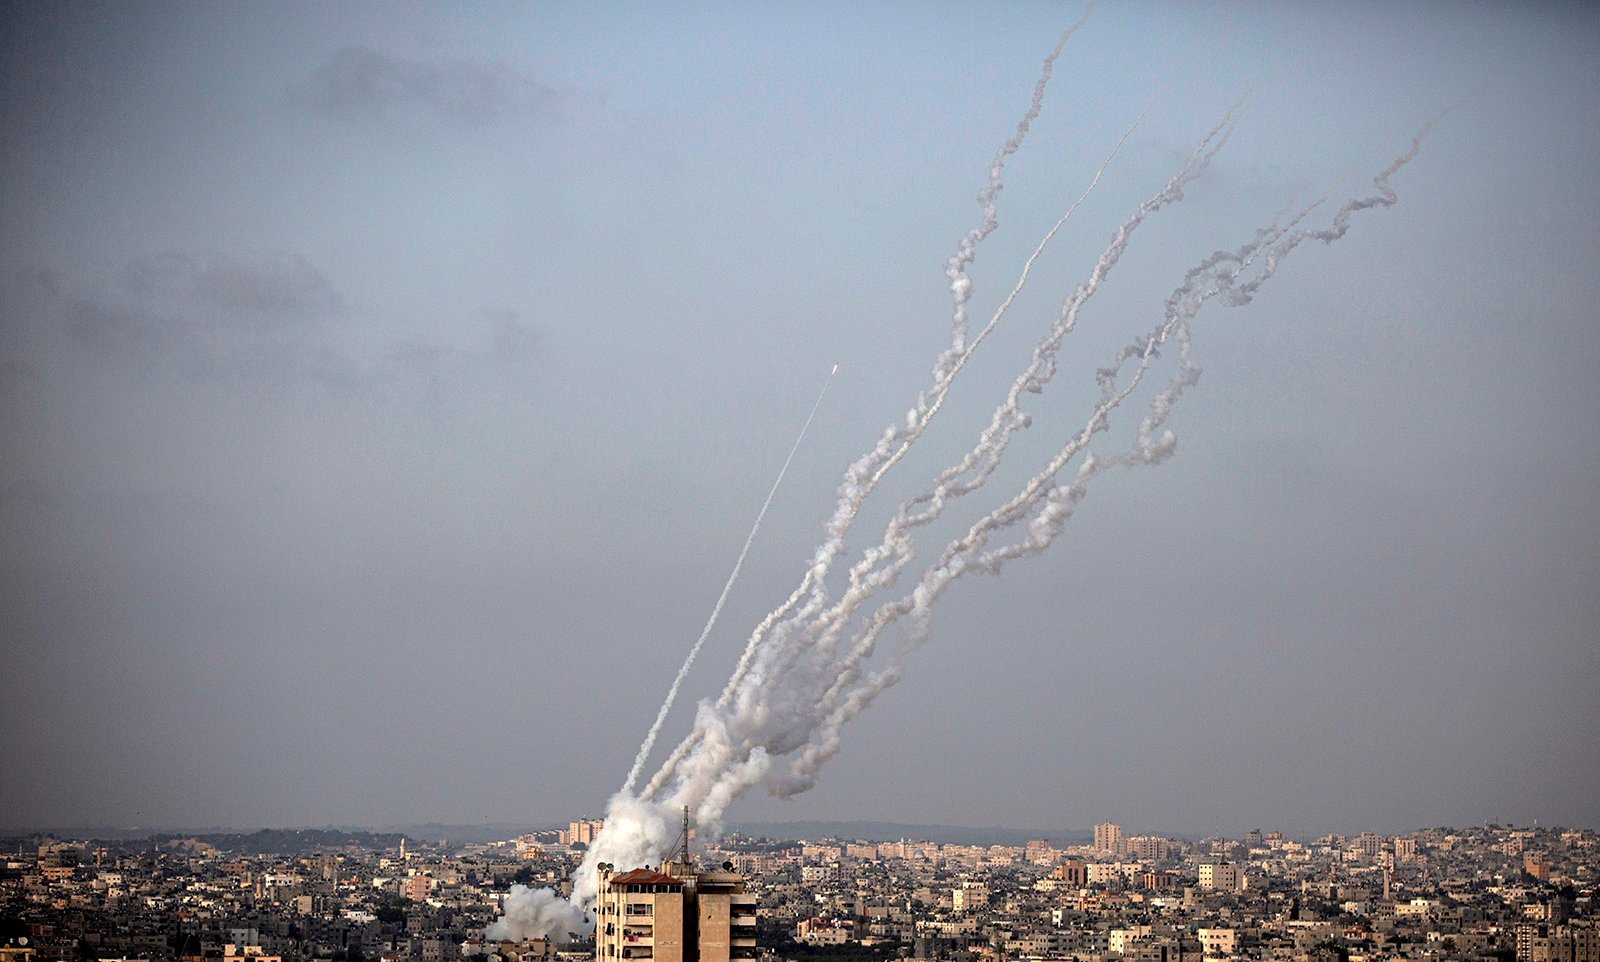 Rockets are launched from the Gaza Strip into Israel on Monday, May 10, 2021. (AP Photo / Khalil Hamra)